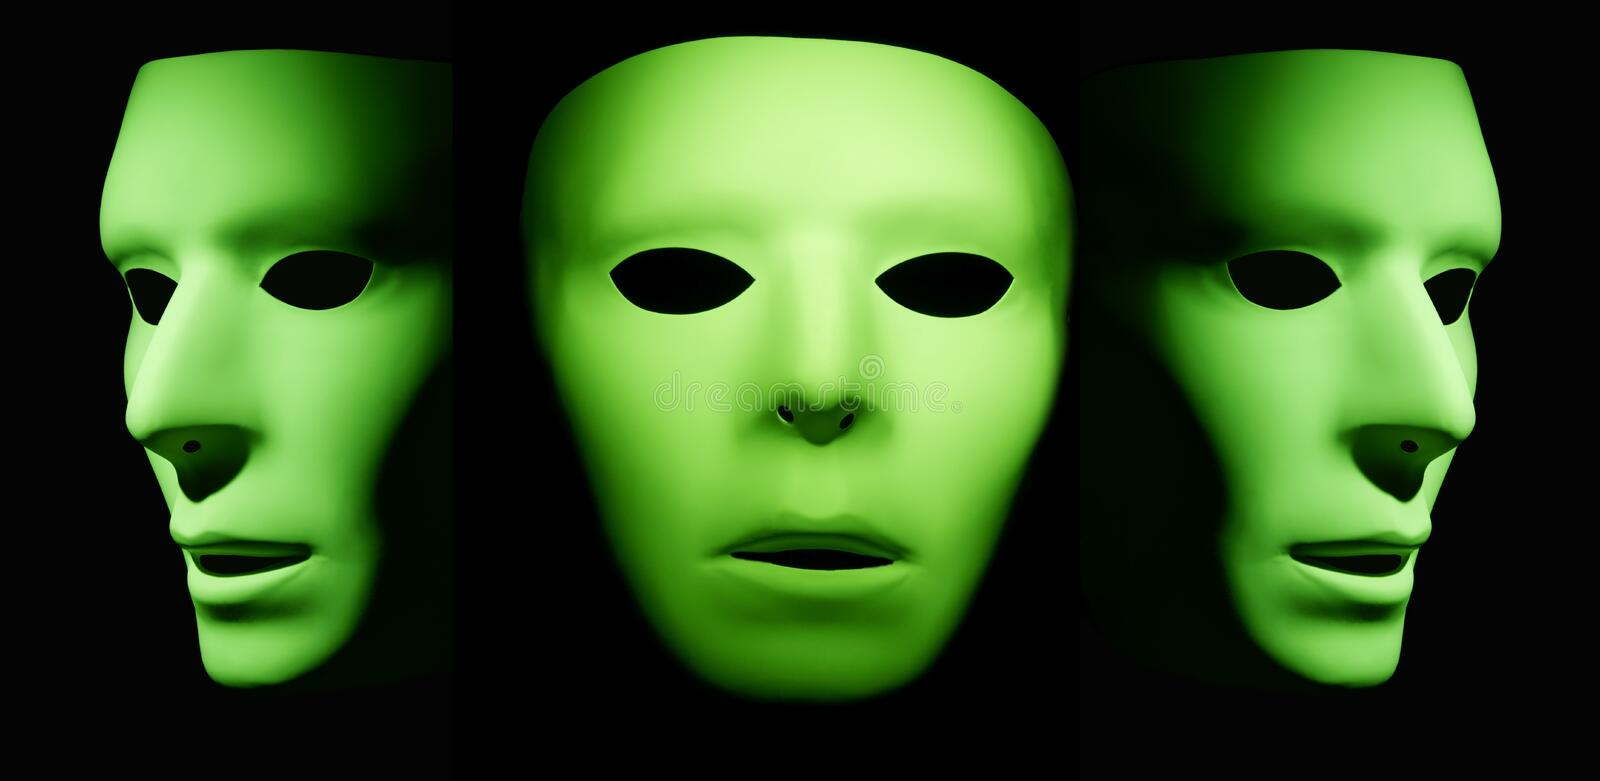 Three Sides To One Face Stock Image